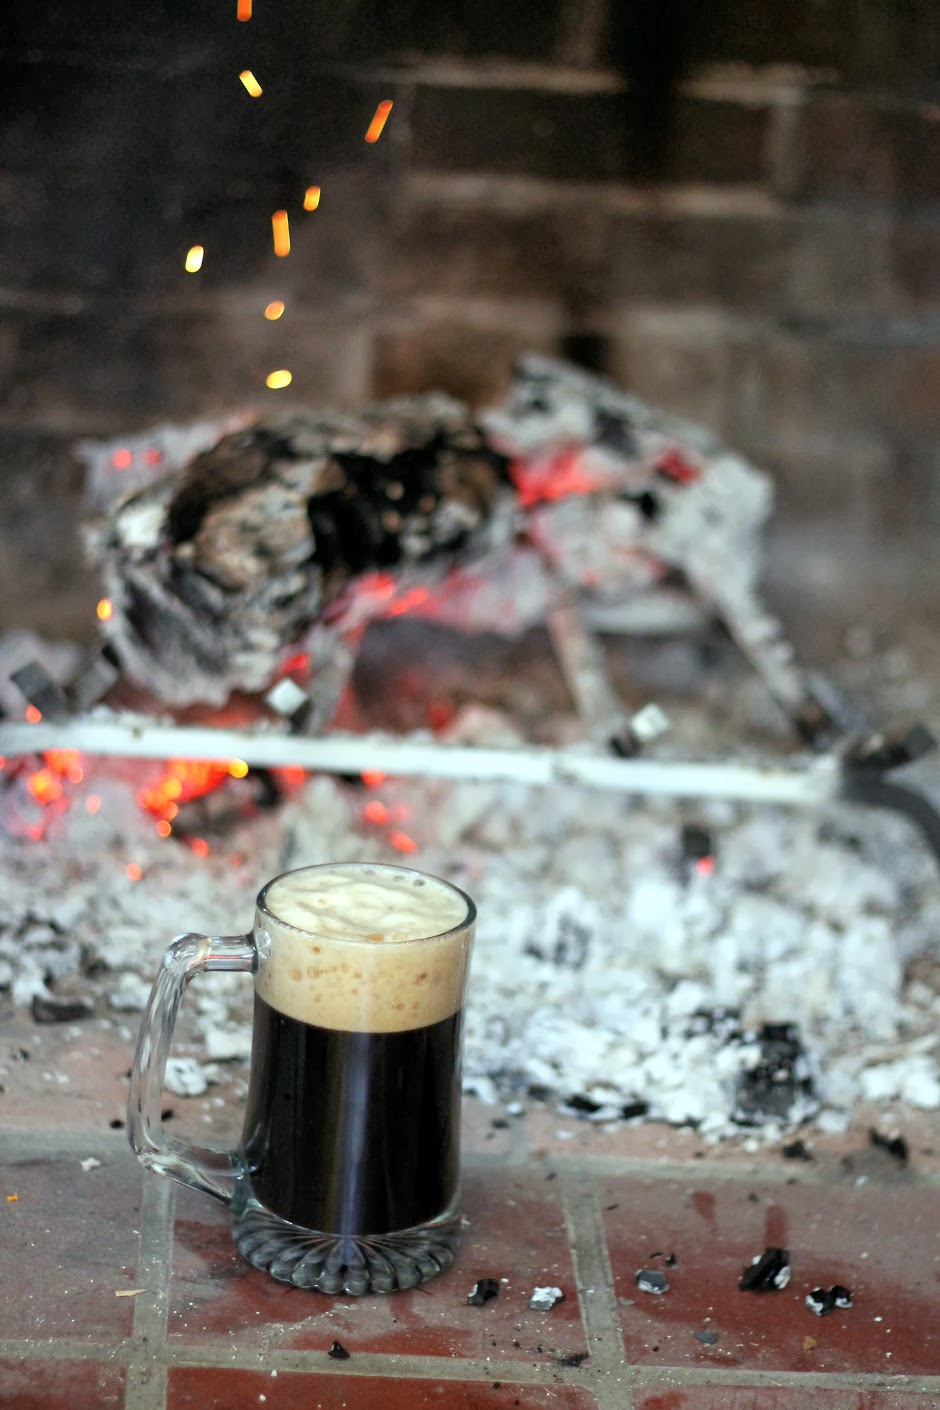 Scottish Stout, next to a dying fire.